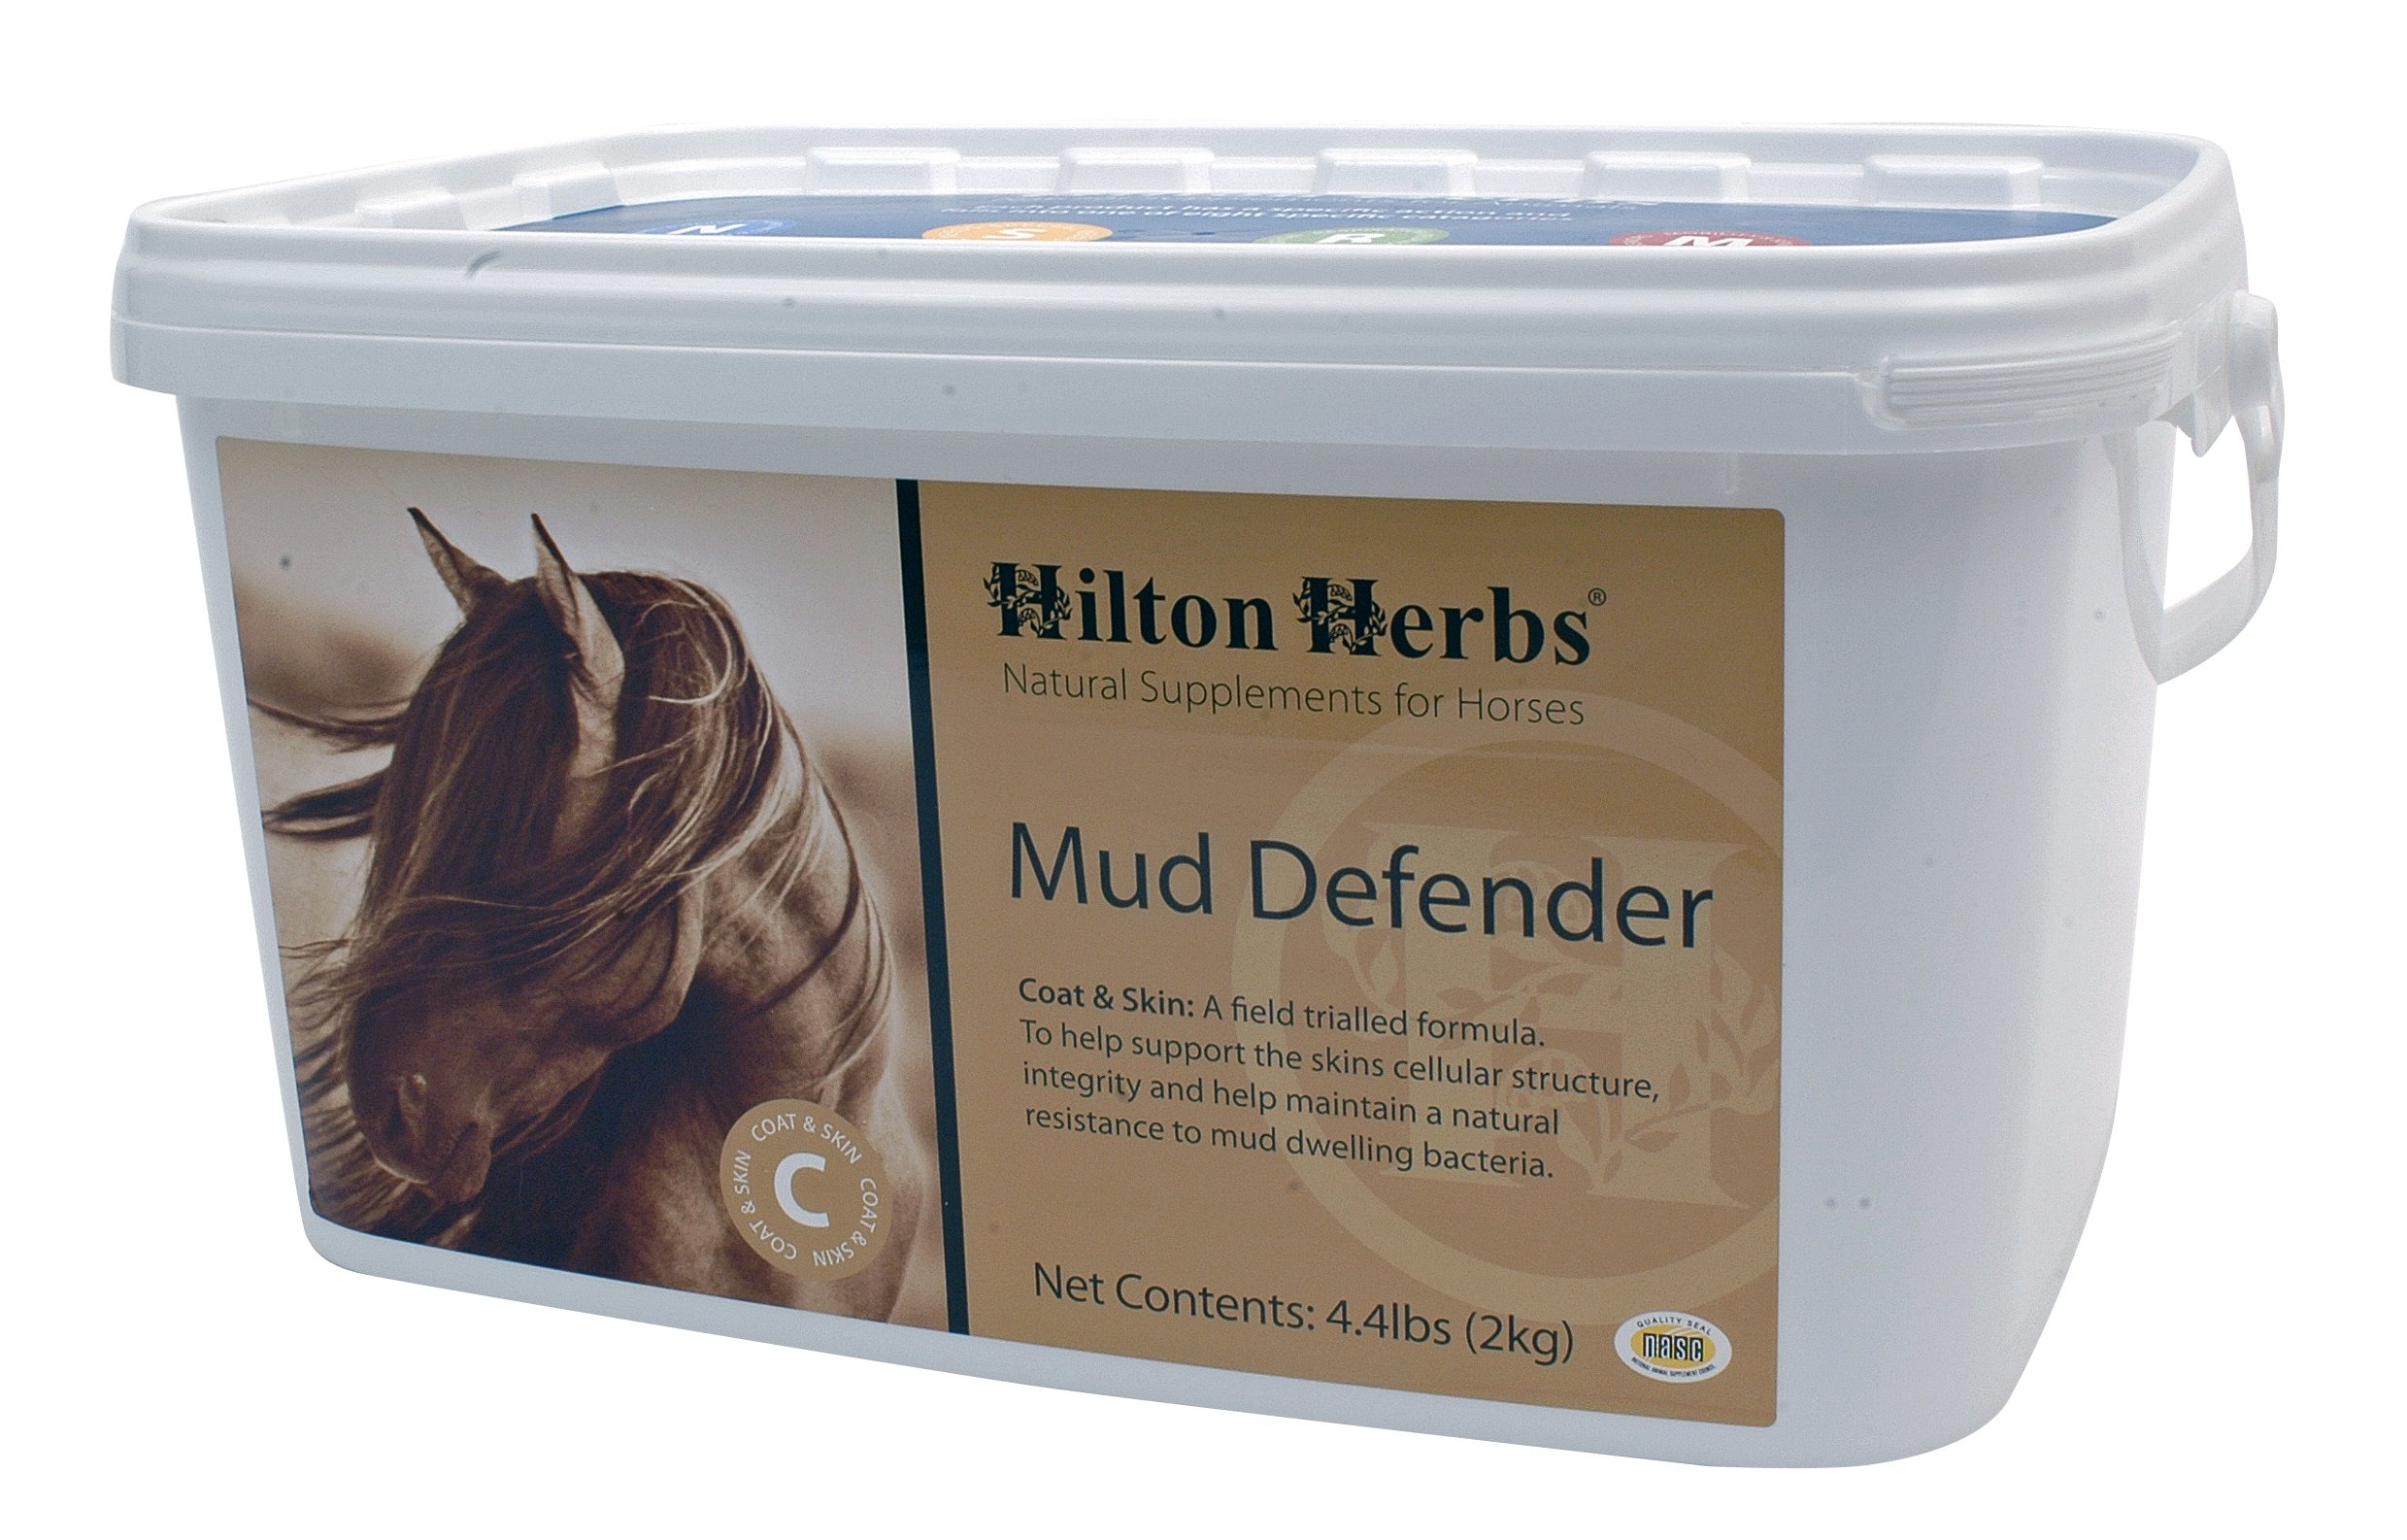 Hilton Herbs Mud Defender Tub Bacteria Resistant Support for Horses, 2kg Tub by Hilton Herbs (Image #1)